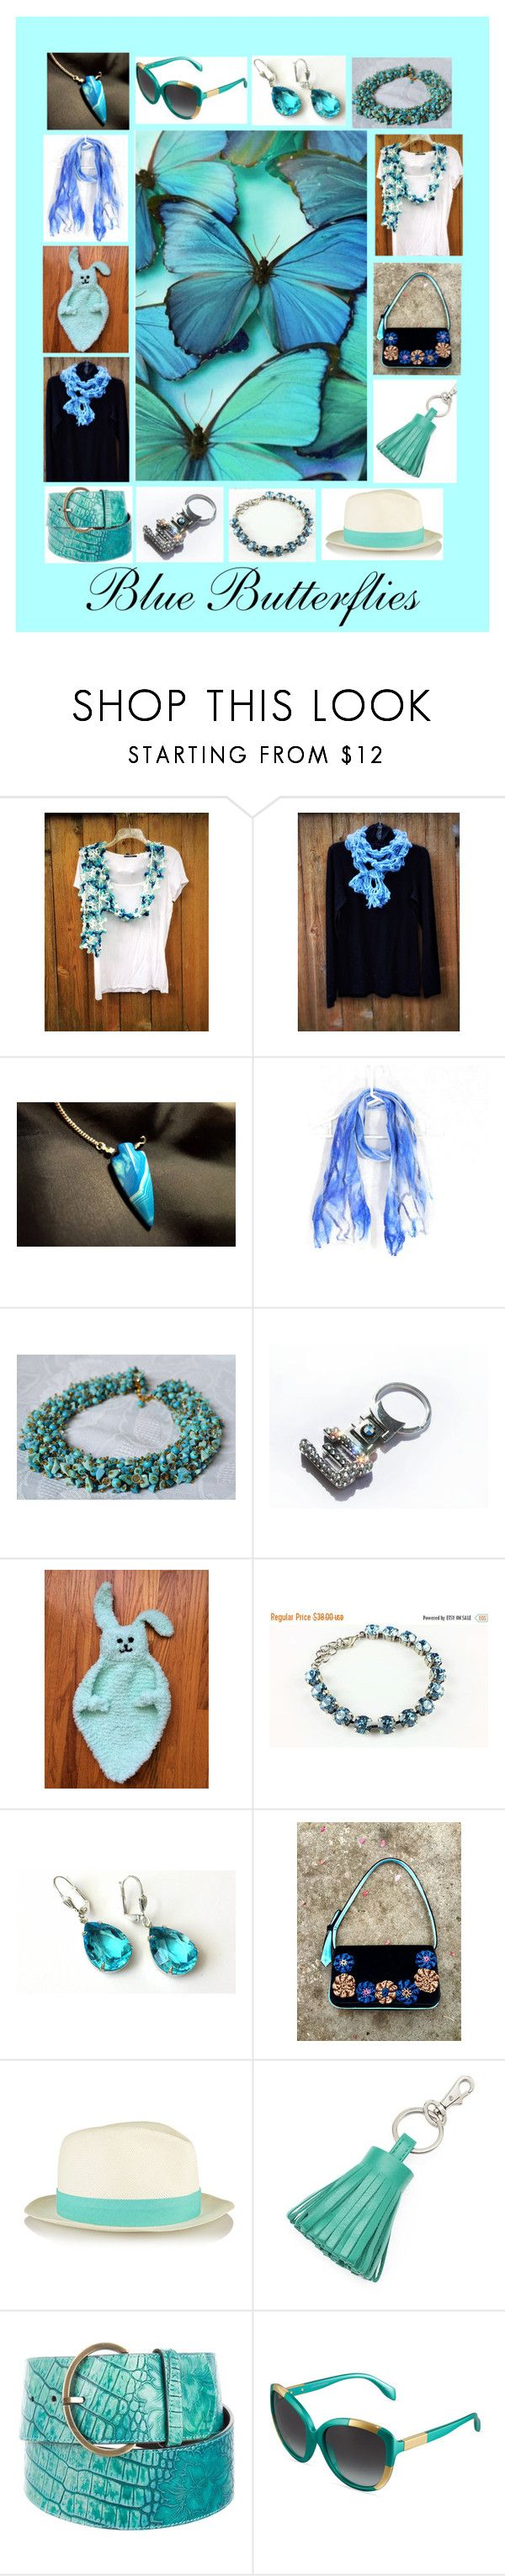 """Blue Butterflies: Winter Fashion Accessories"" by paulinemcewen ❤ liked on Polyvore featuring BMW, ILI, Oscar de la Renta and Alexander McQueen"